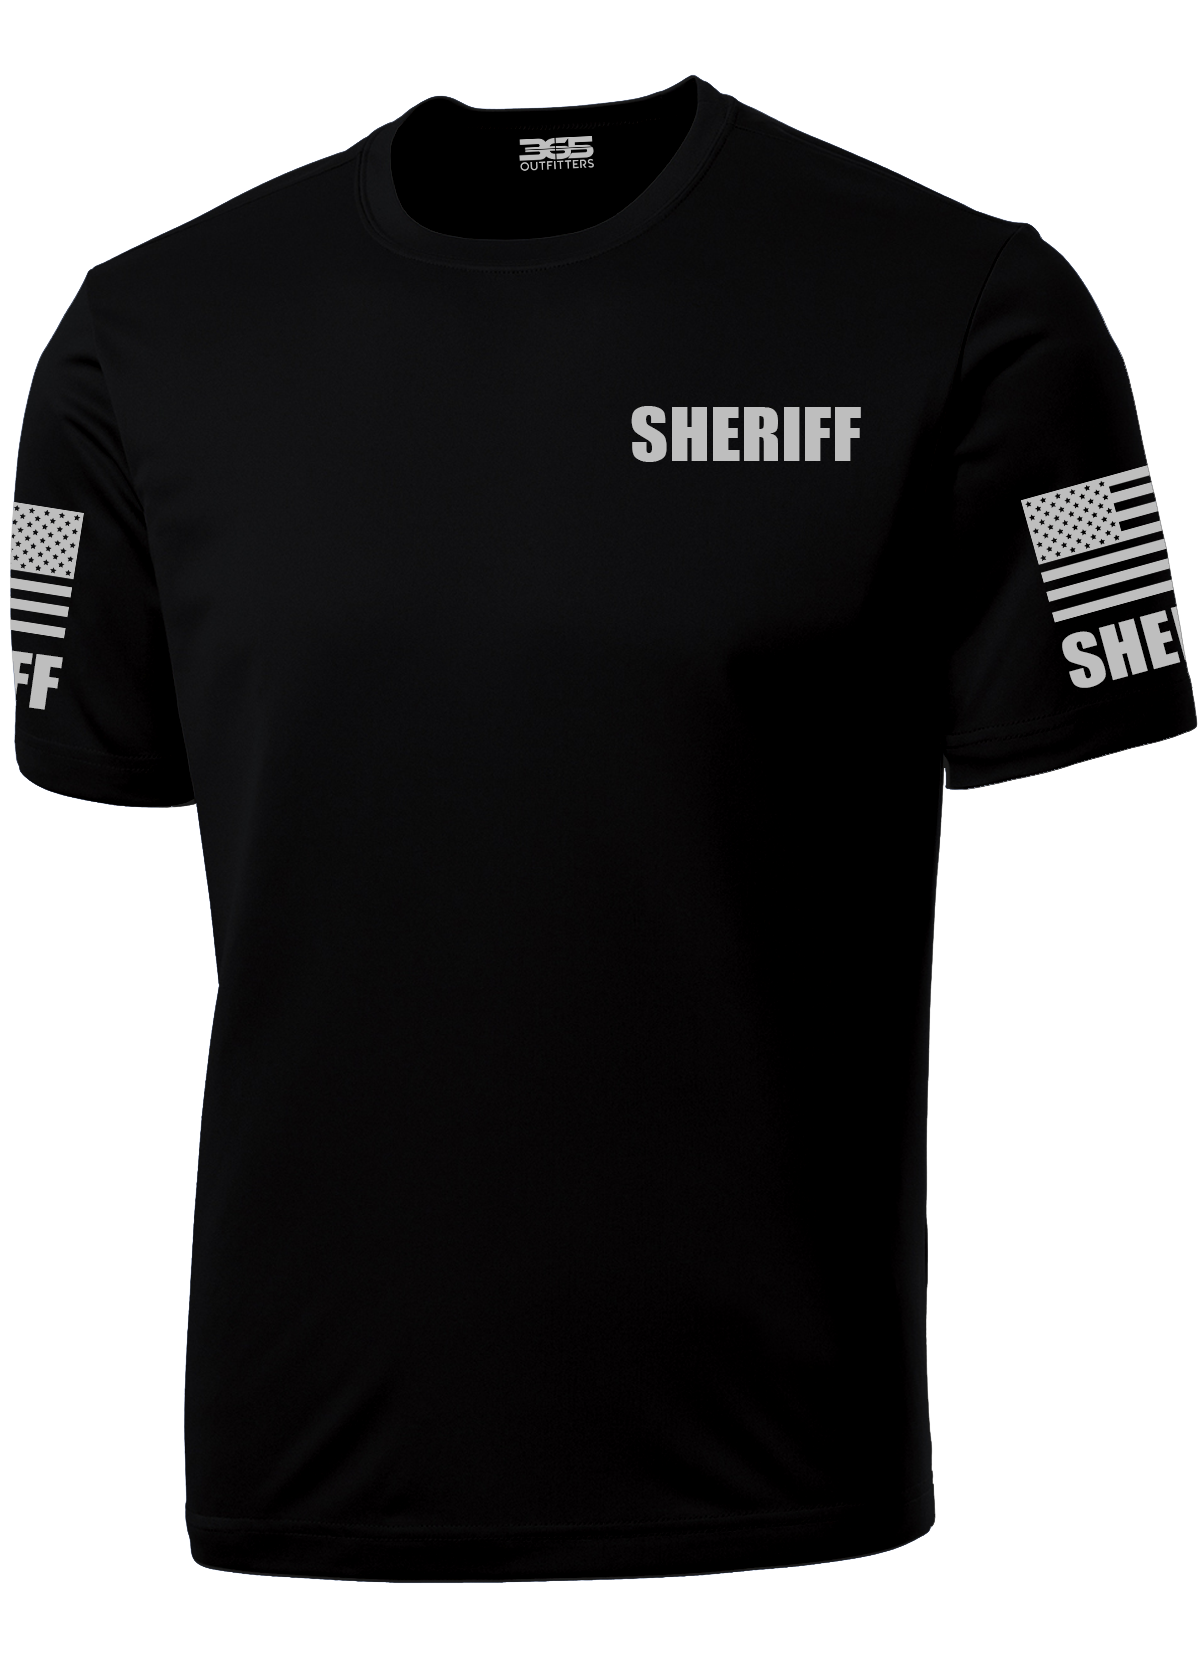 d78df971dd0e ... Men's Black Sheriff's Performance Shirt - №365 Outfitters ...